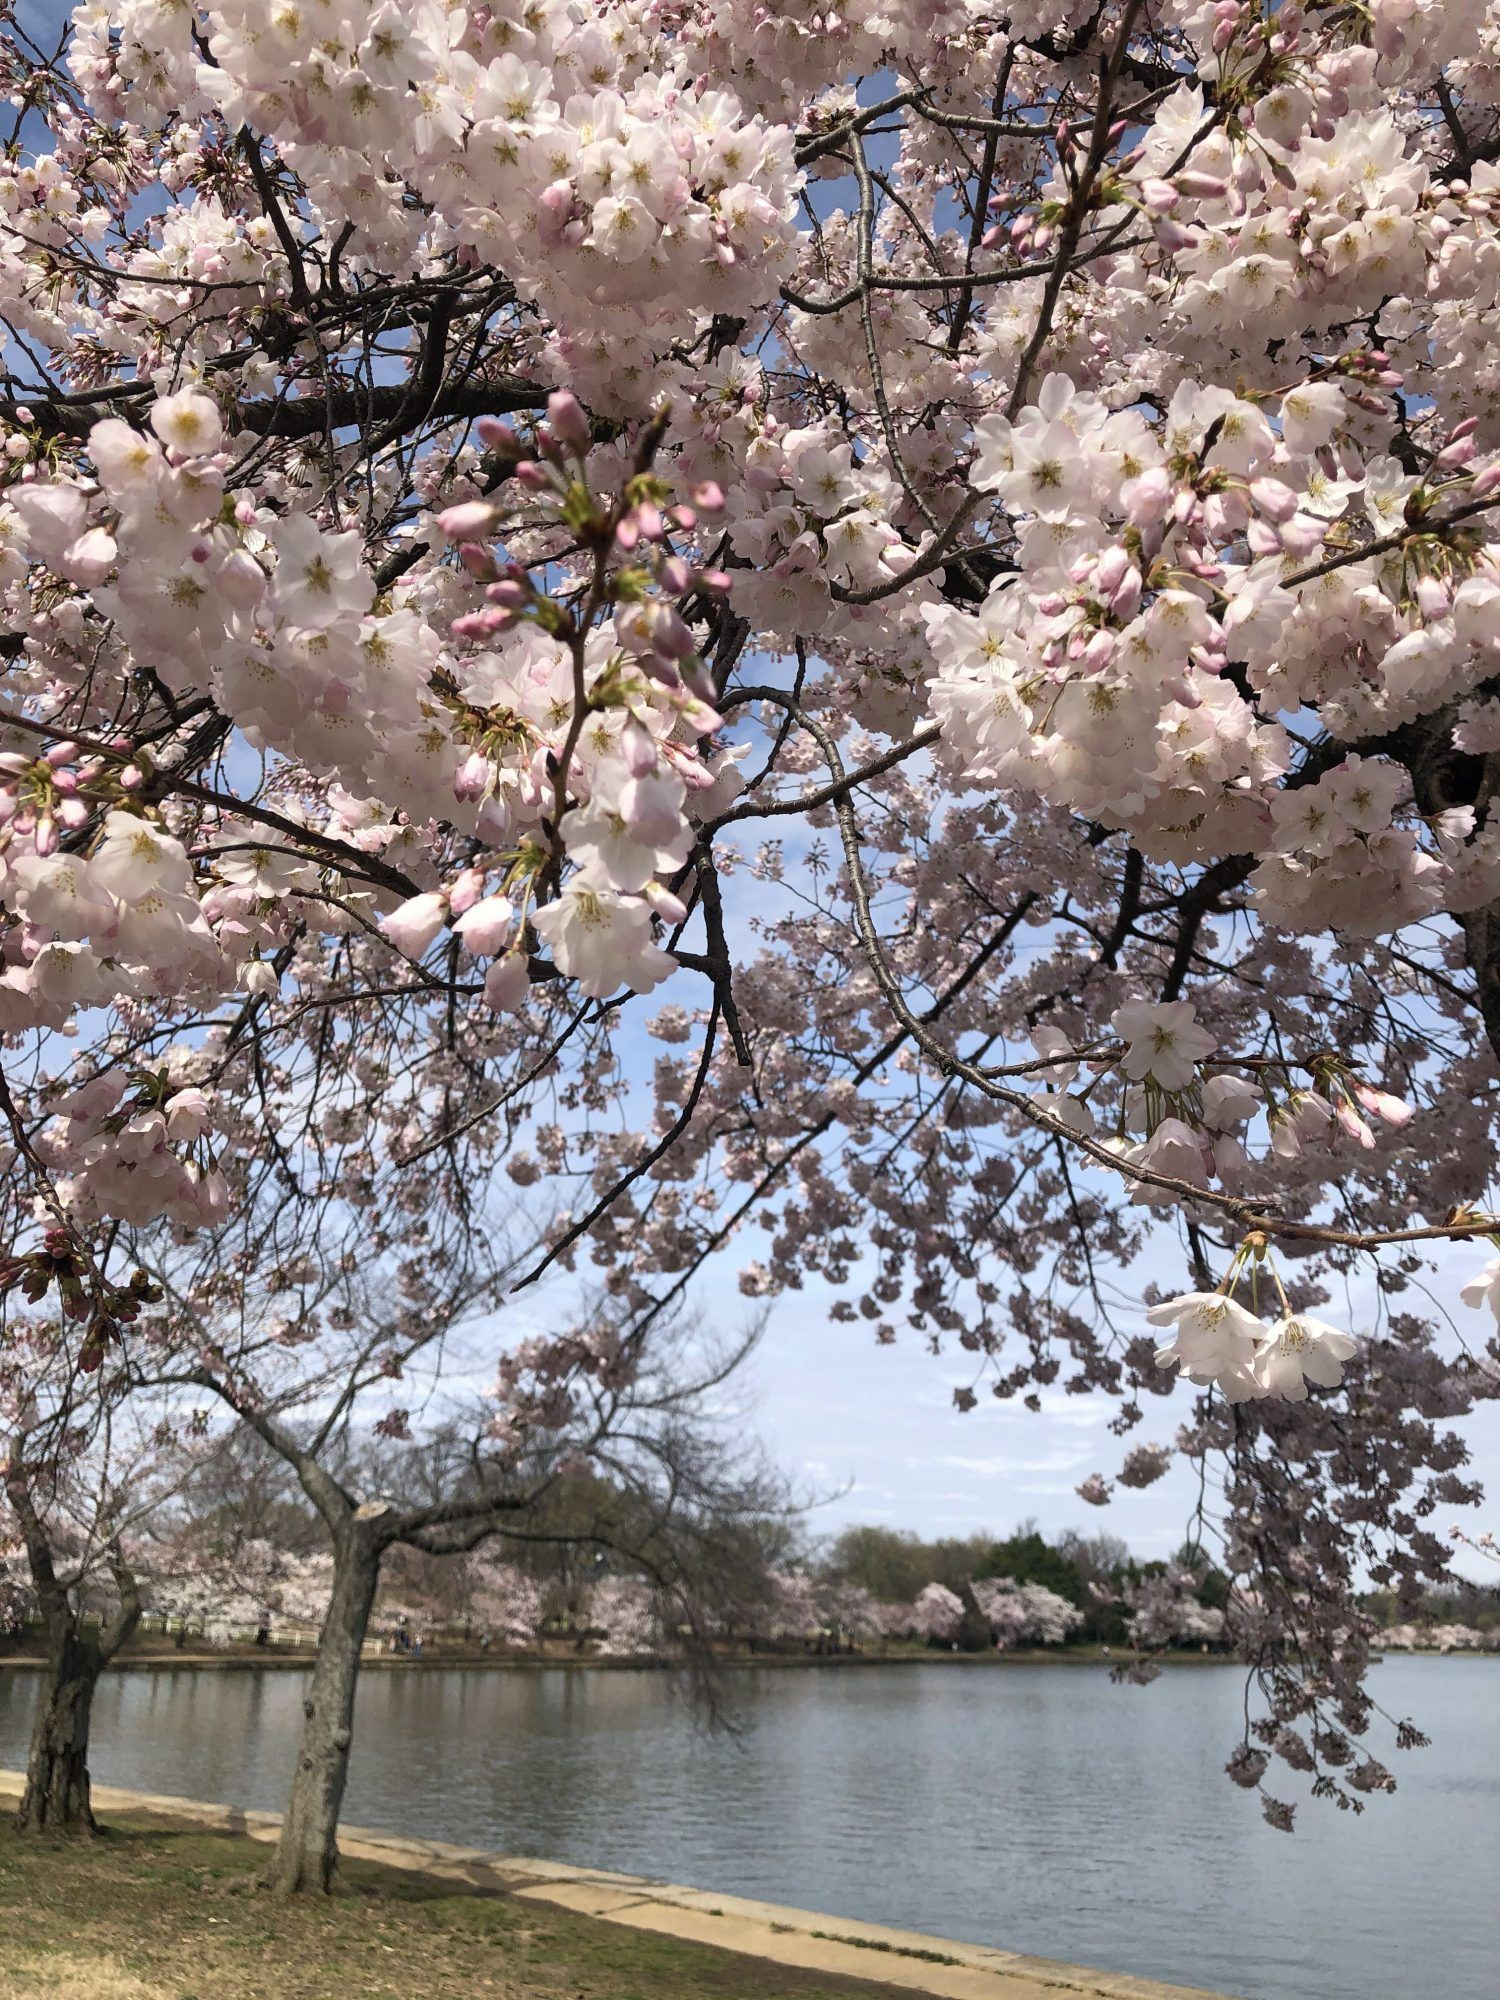 Watch The Cherry Blossoms In Real Time At The National Mall In D C On The Bloom Cam Cherry Blossom Blossom Trees Cherry Blossom Tree